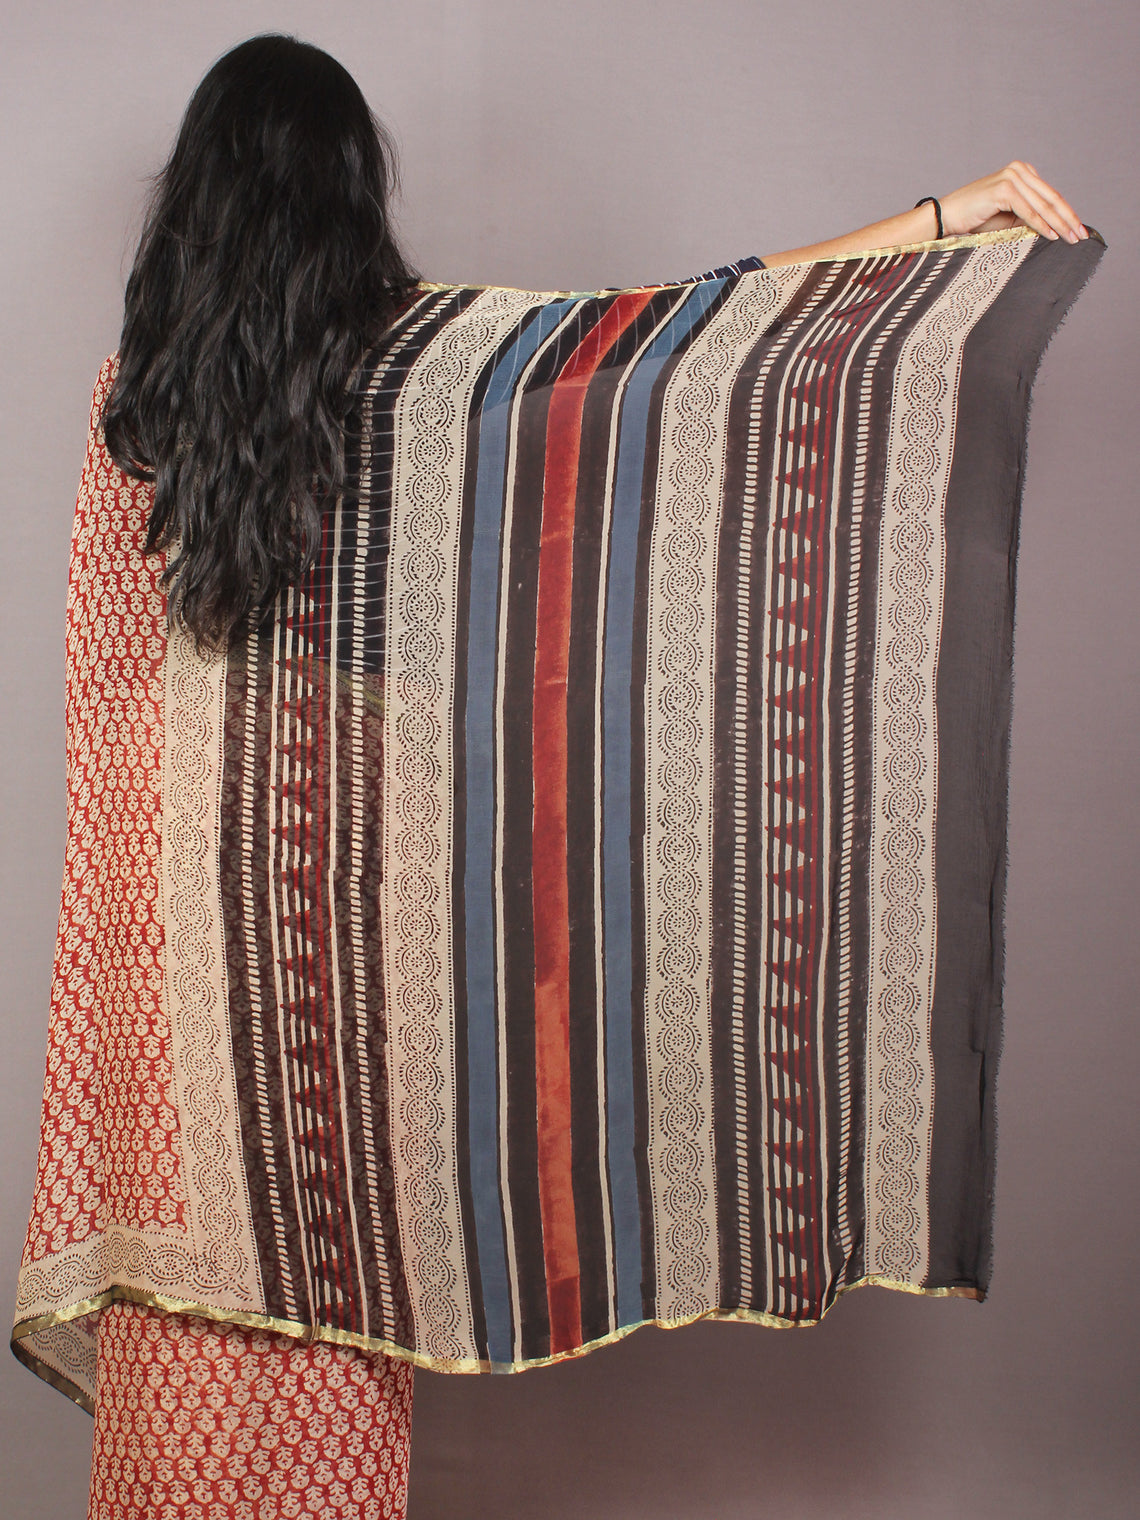 Maroon Ivory Black Hand Block Printed in Natural Colors Chiffon Saree - S03170786